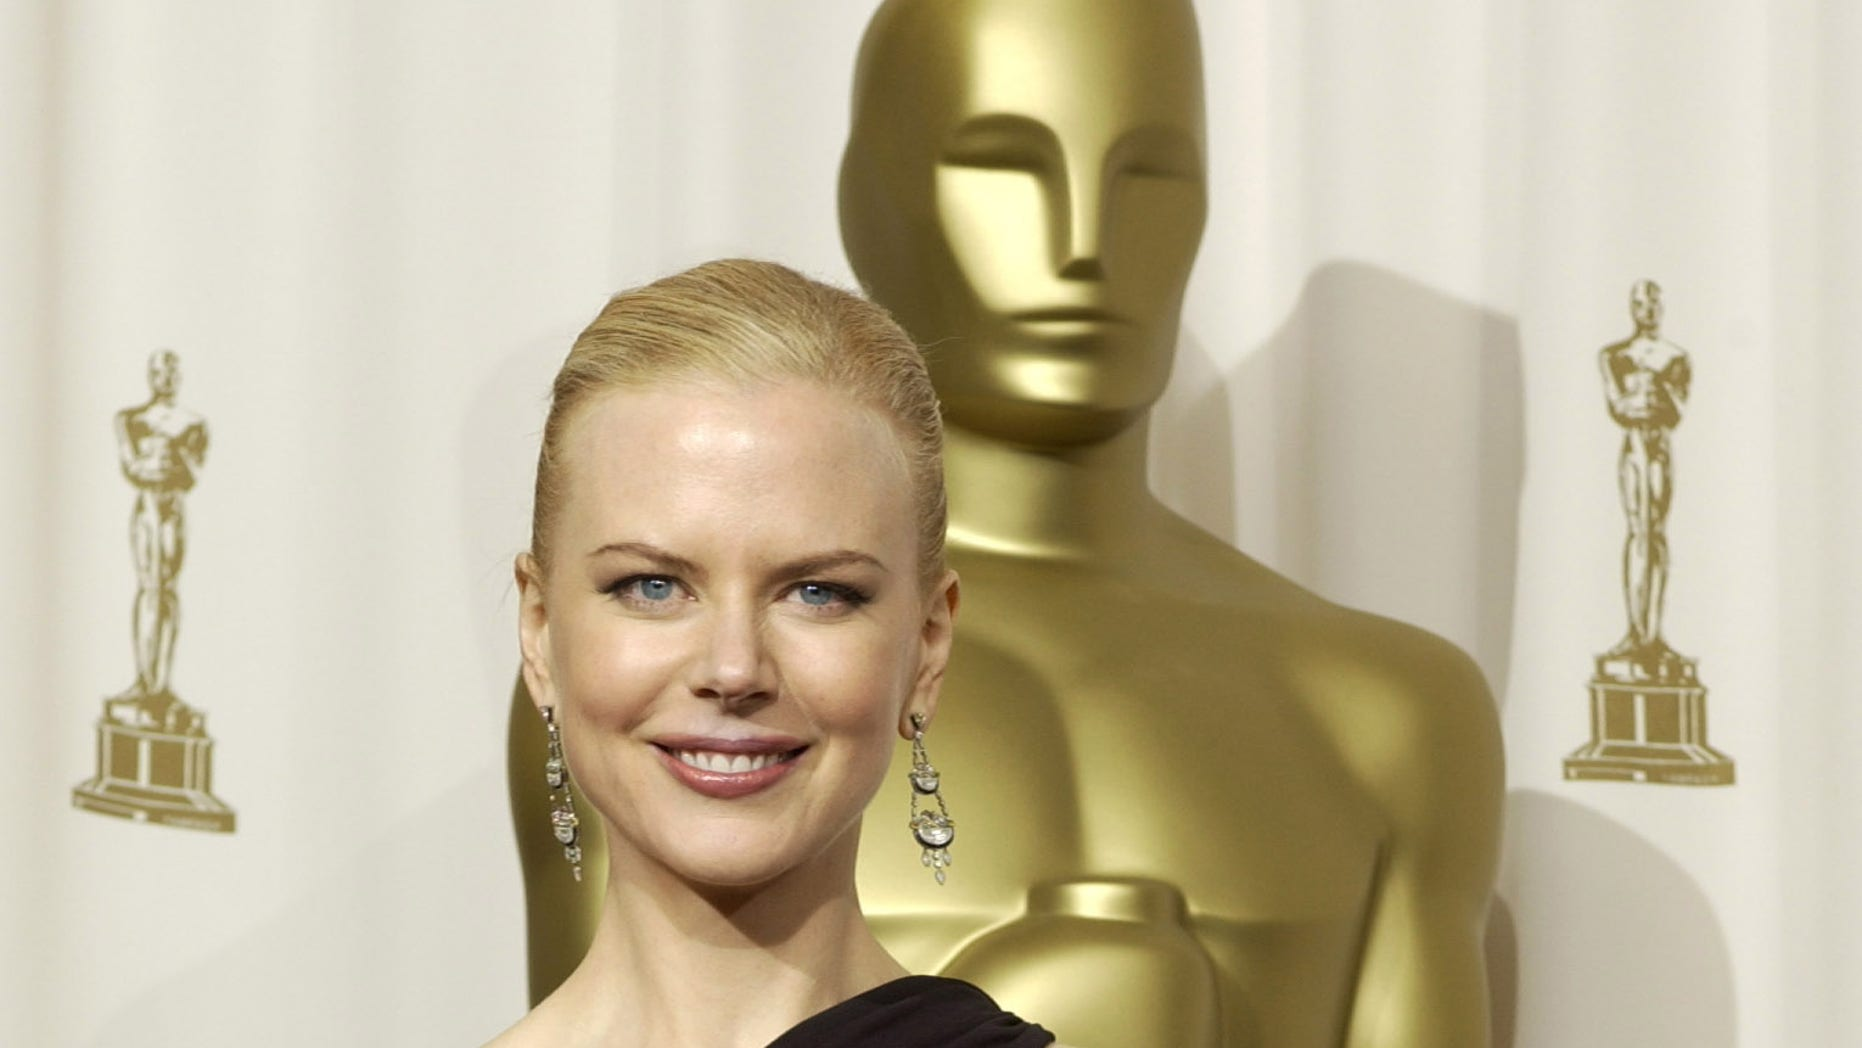 """Nicole Kidman poses with her Oscar statue for the Academy Award for best actress she won for her role in """"The Hours"""" at the 75th annual Academy Awards at the Kodak Theatre in Hollywood, March 23, 2003."""